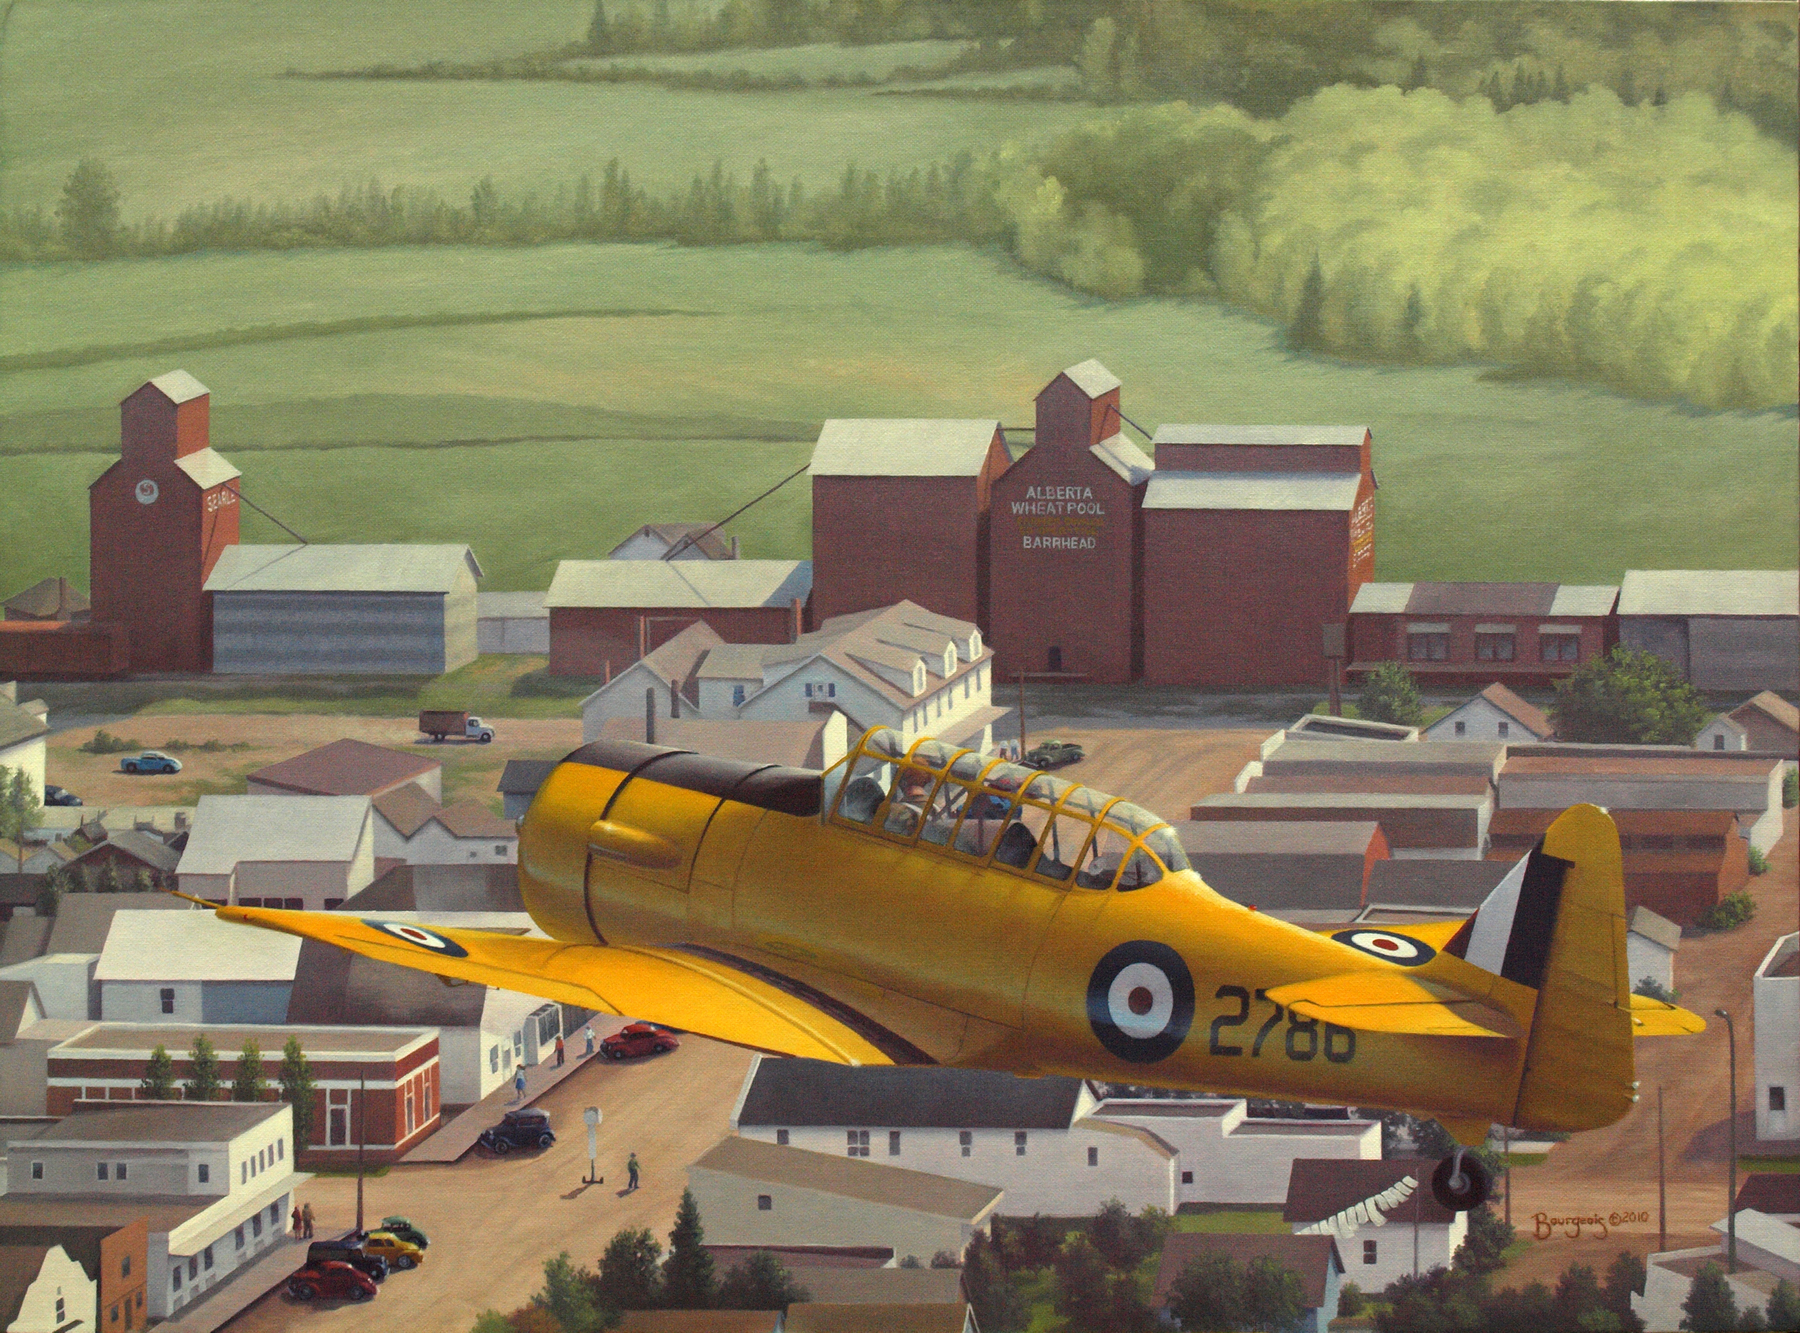 A painting of a British Commonwealth Air Training Plan aircraft overflying a Canadian prairie town as the pilot confirms his location by seeing the town's name, Barrhead, on a grain elevator.